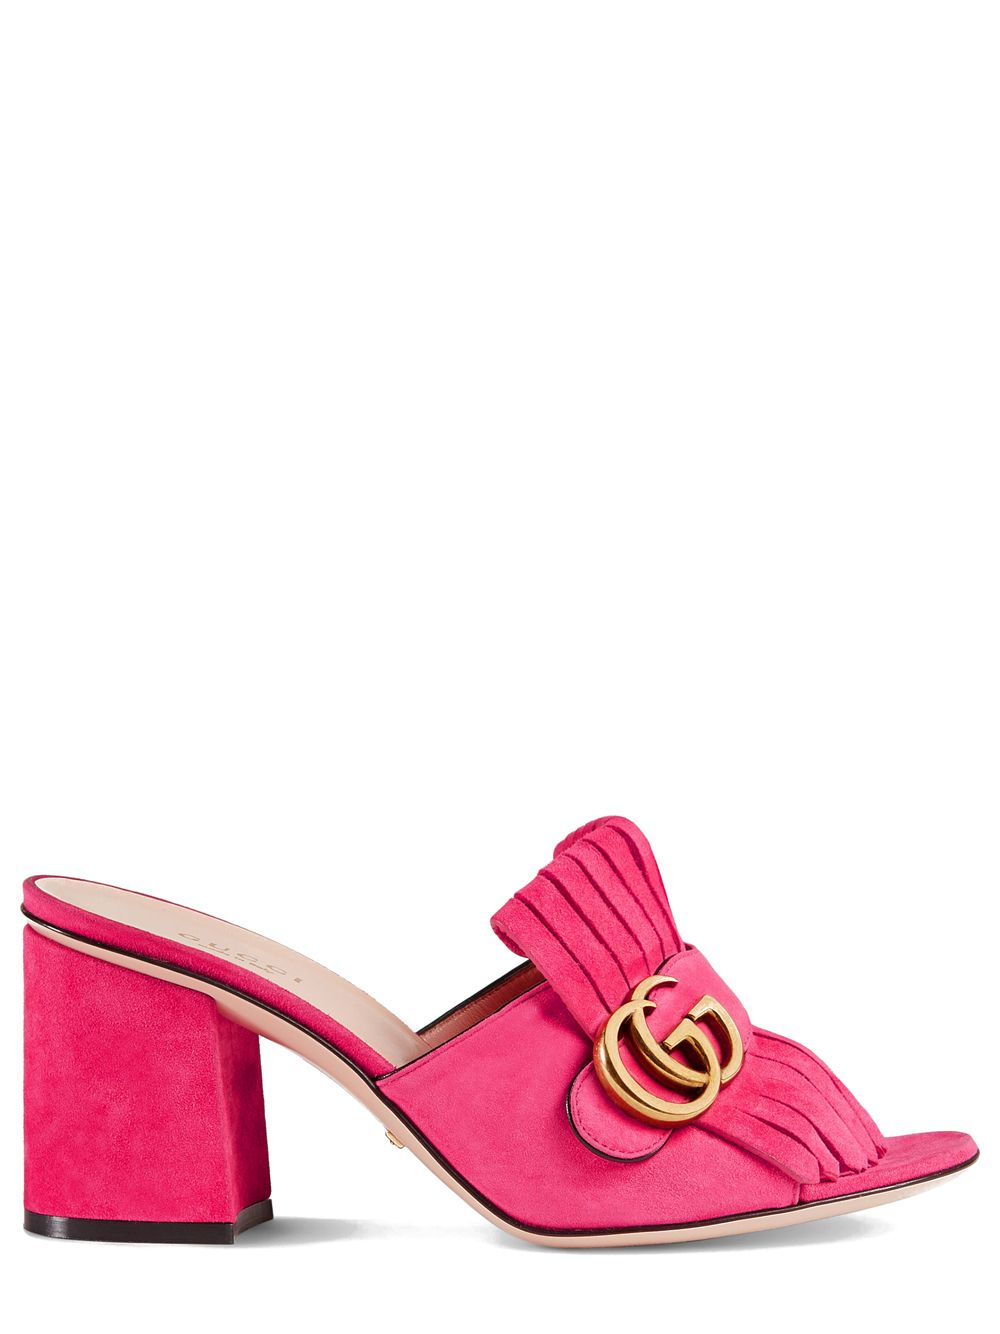 569e5ed1b8d Gucci Pink Suede Mid-Heel Slide Mules